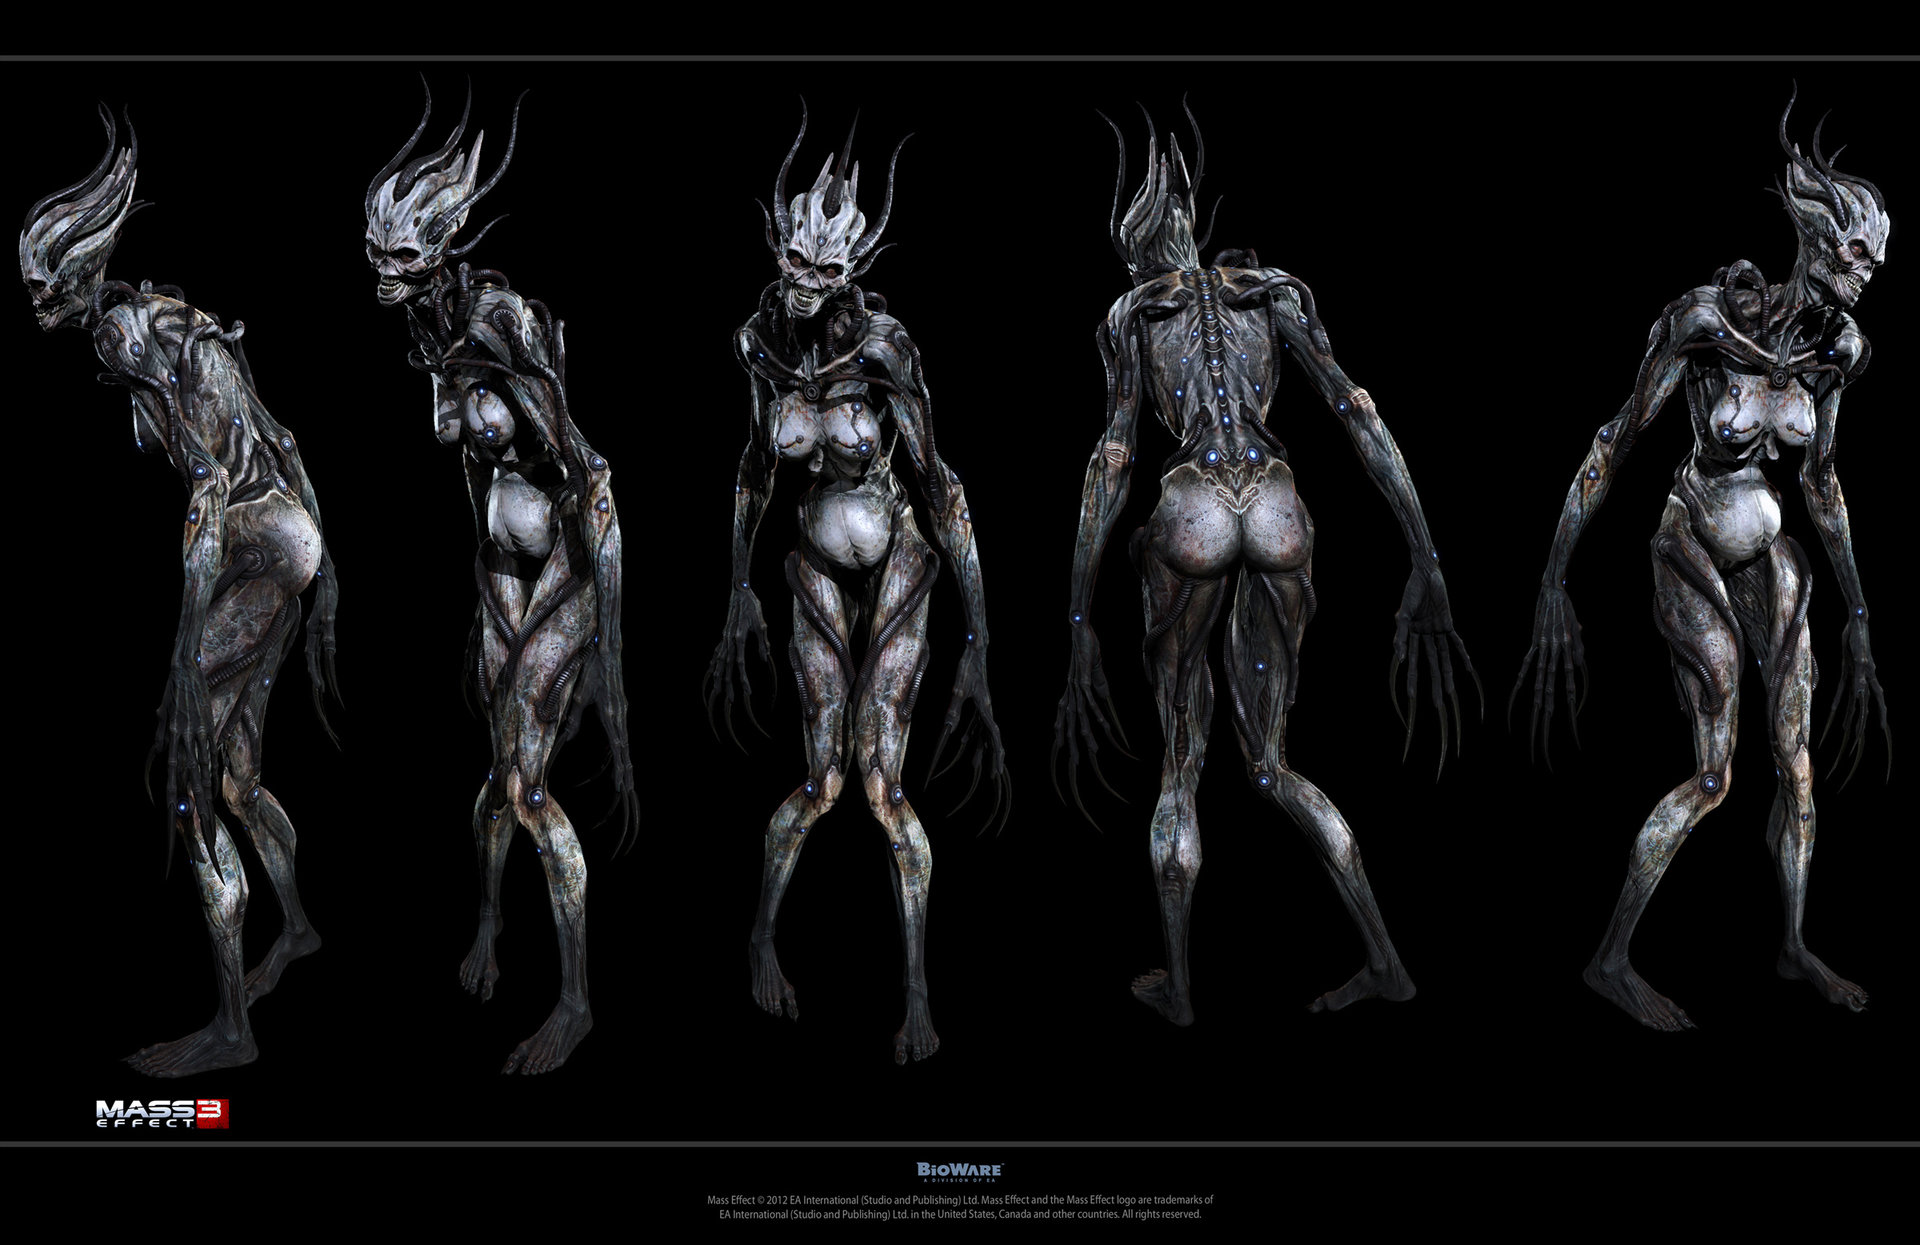 Character art from BioWare's action RPG Mass Effect 3.